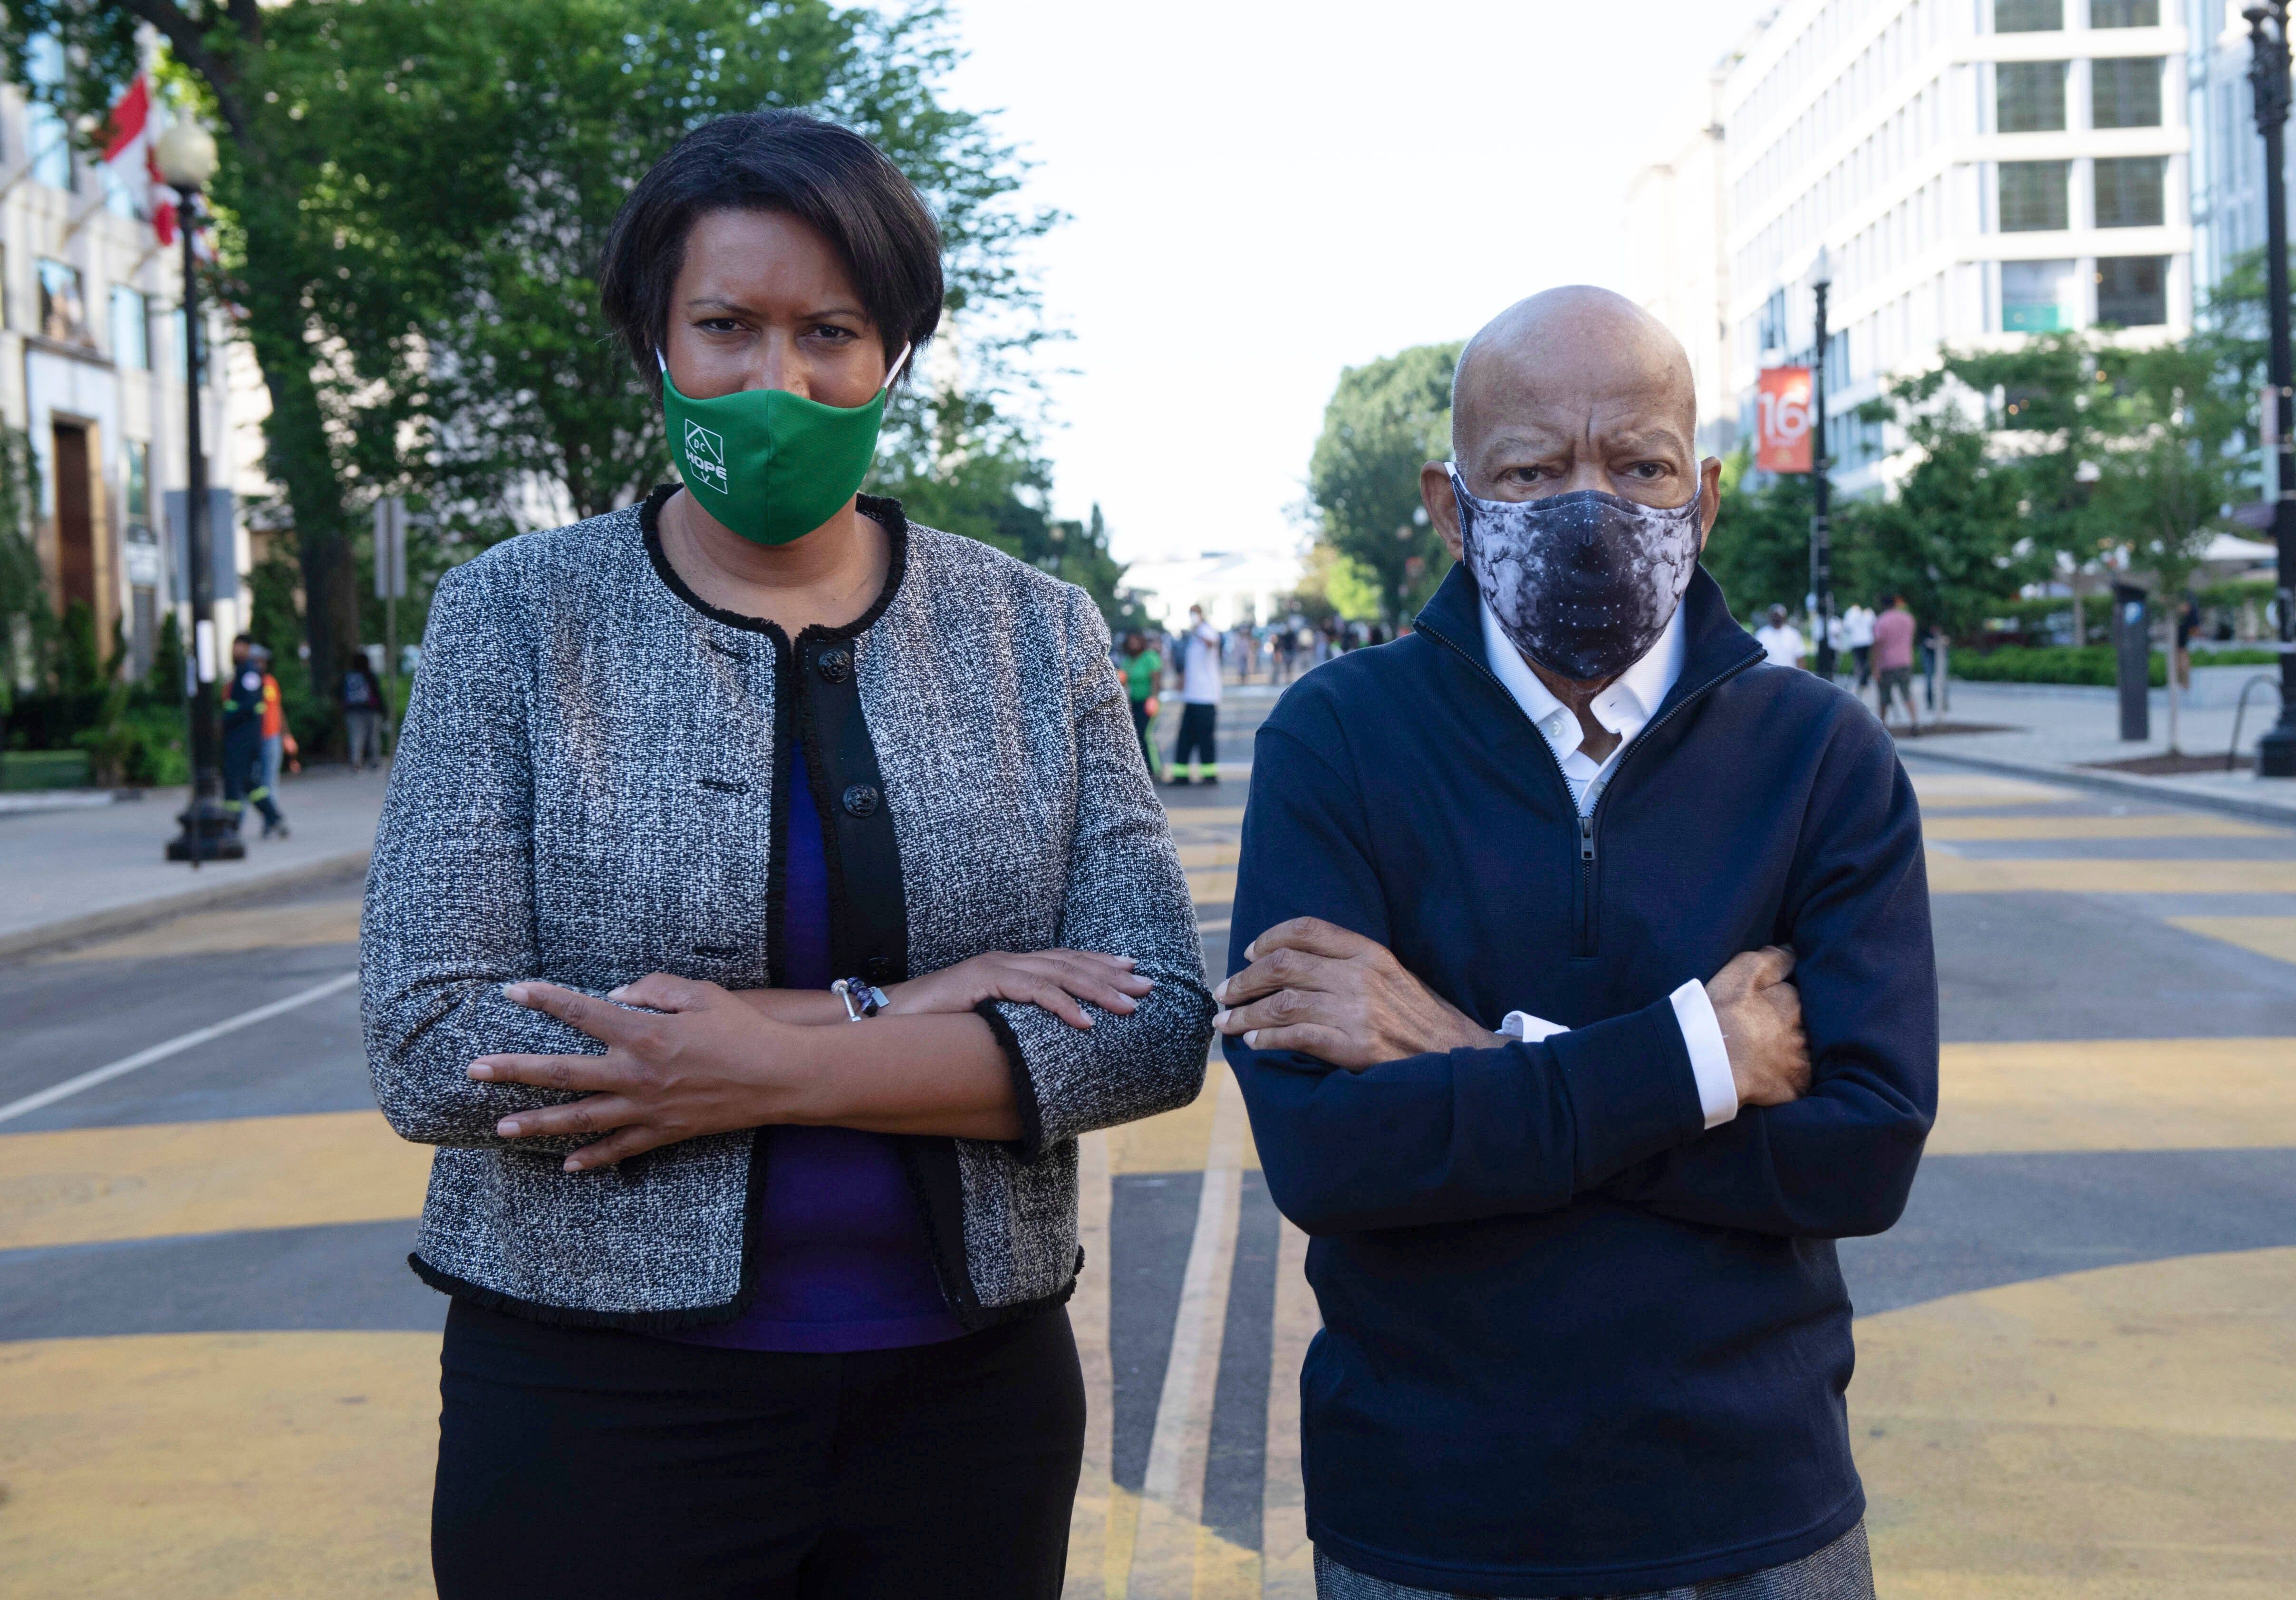 Washington Mayor Muriel Bowser stands with civil rights icon John Lewis on June 7, 2020, on a section of 16th Street renamed Black Lives Matter Plaza. The White House is in the background.